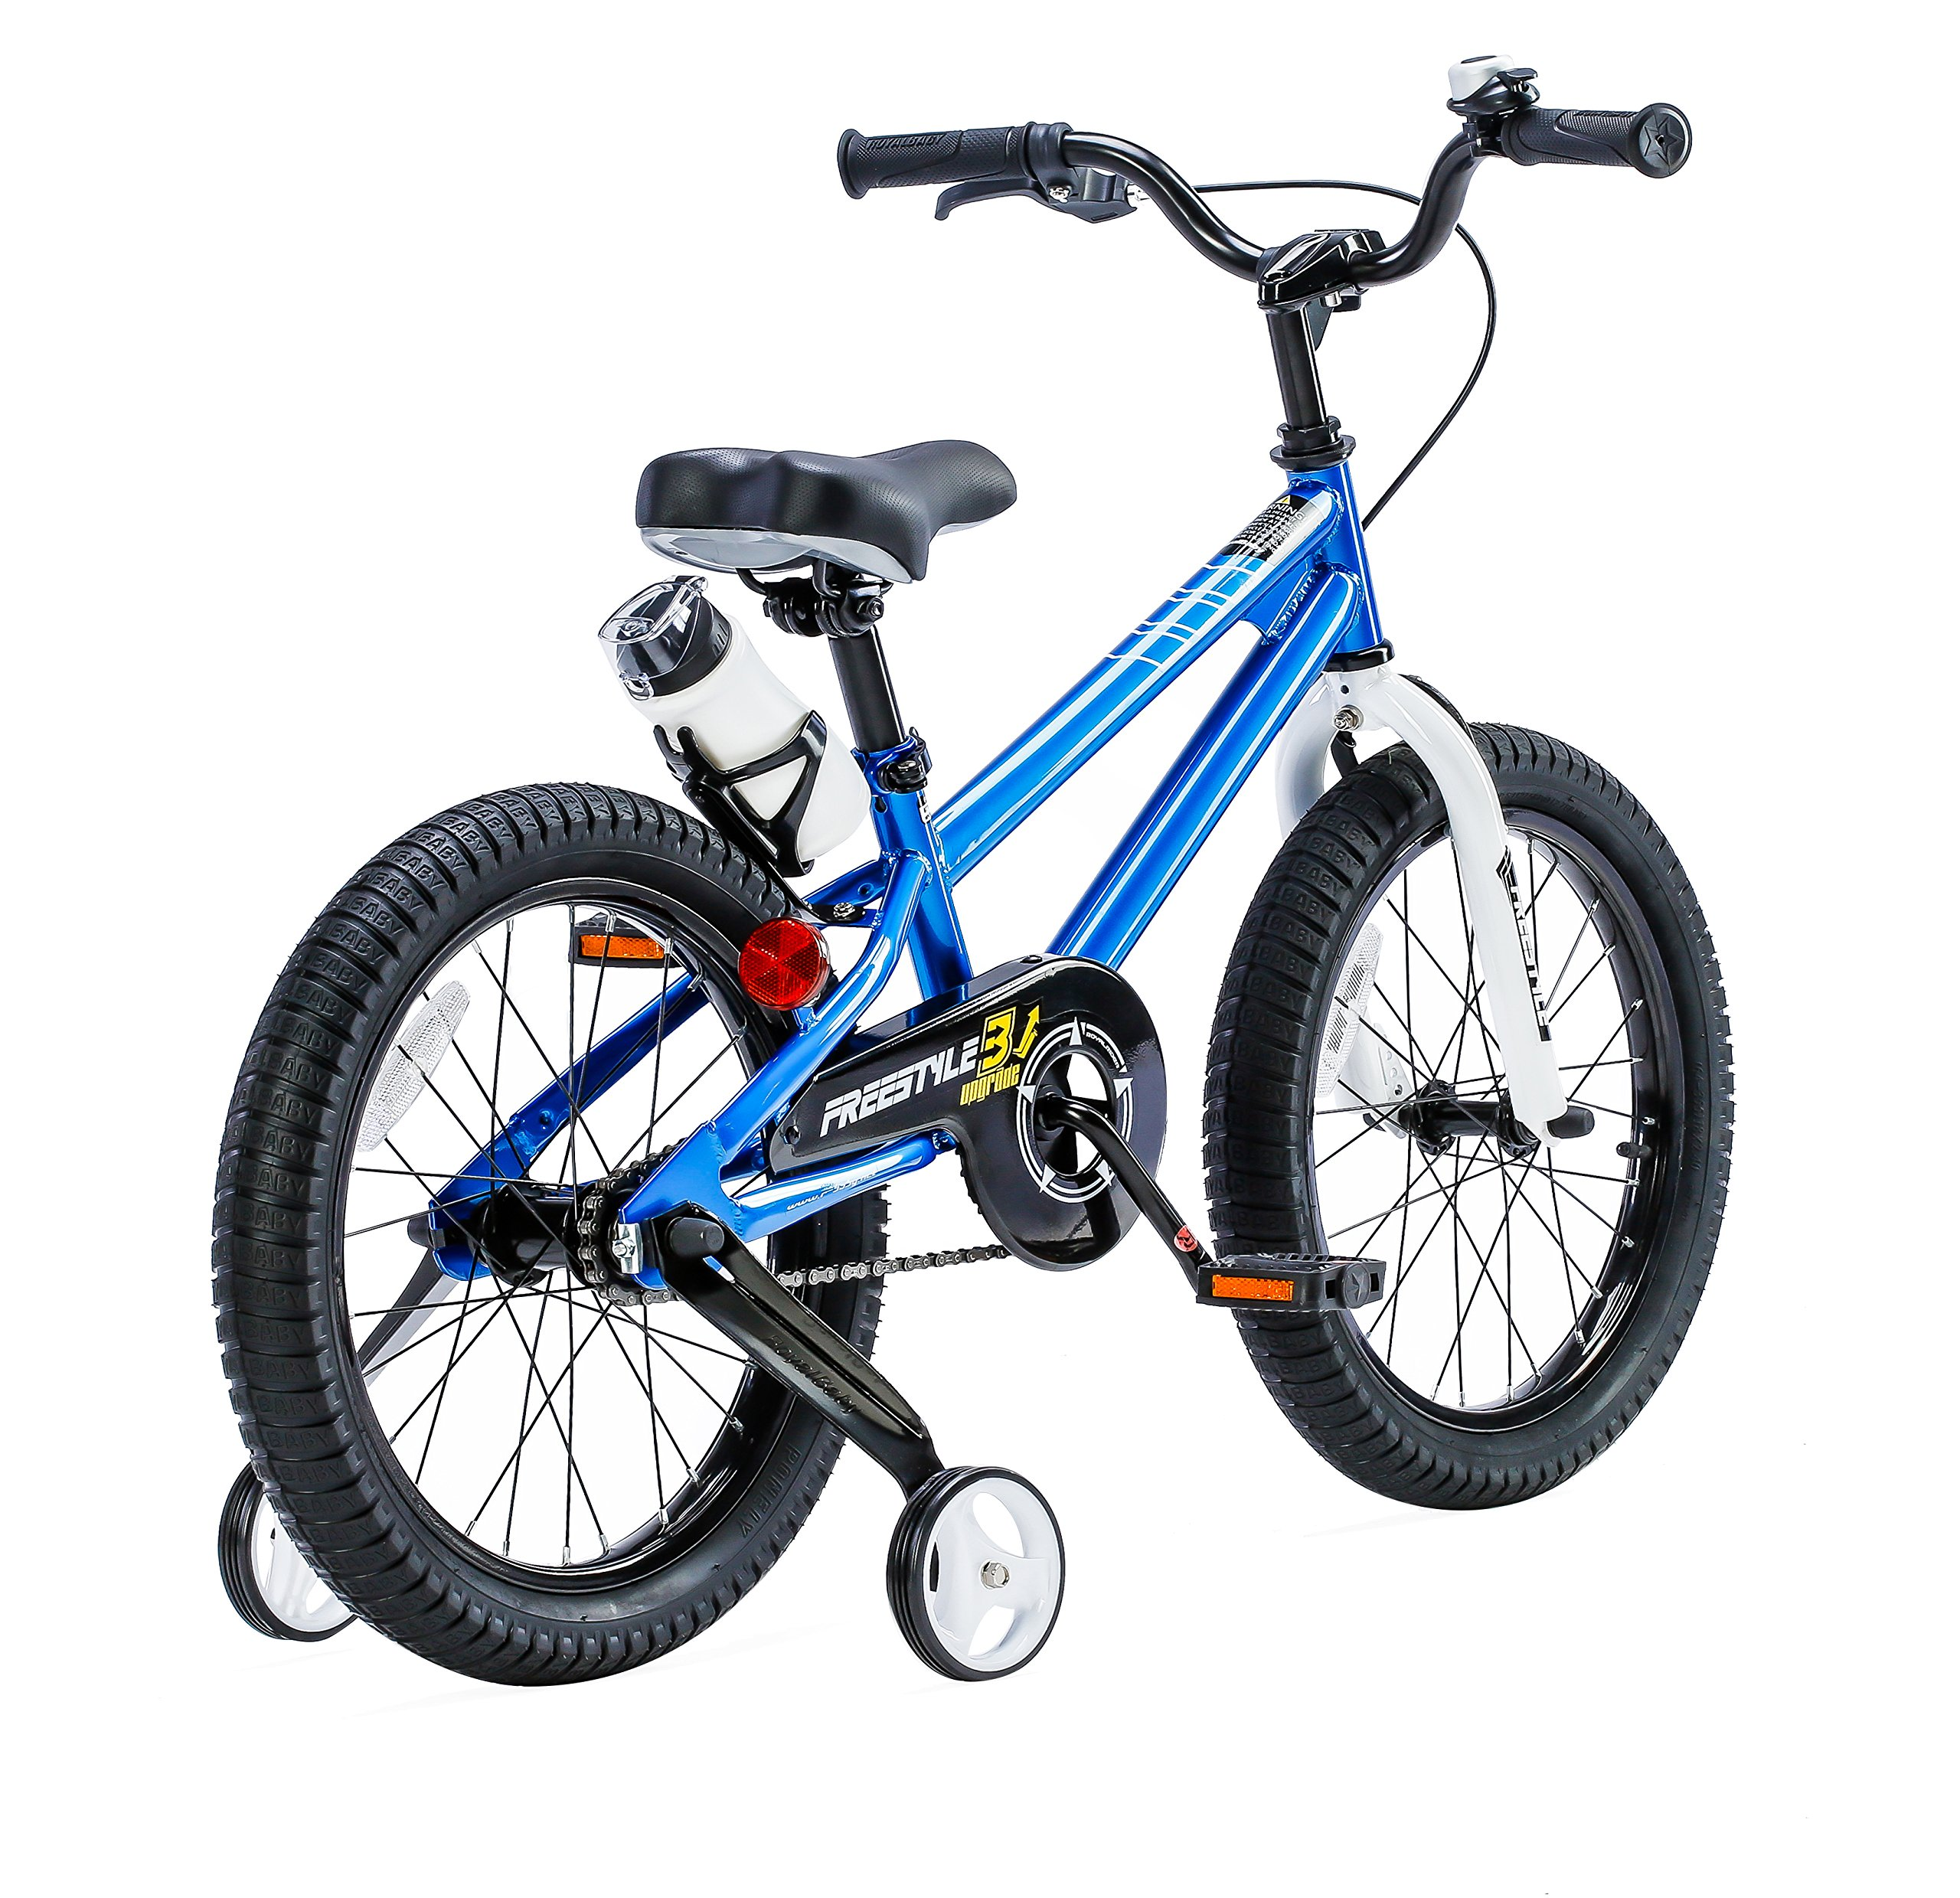 RoyalBaby BMX Freestyle Kids Bike, Boy's Bikes and Girl's Bikes with training wheels, 12 inch, 14 inch, 16 inch, 18 inch, Gifts for children by Royalbaby (Image #2)